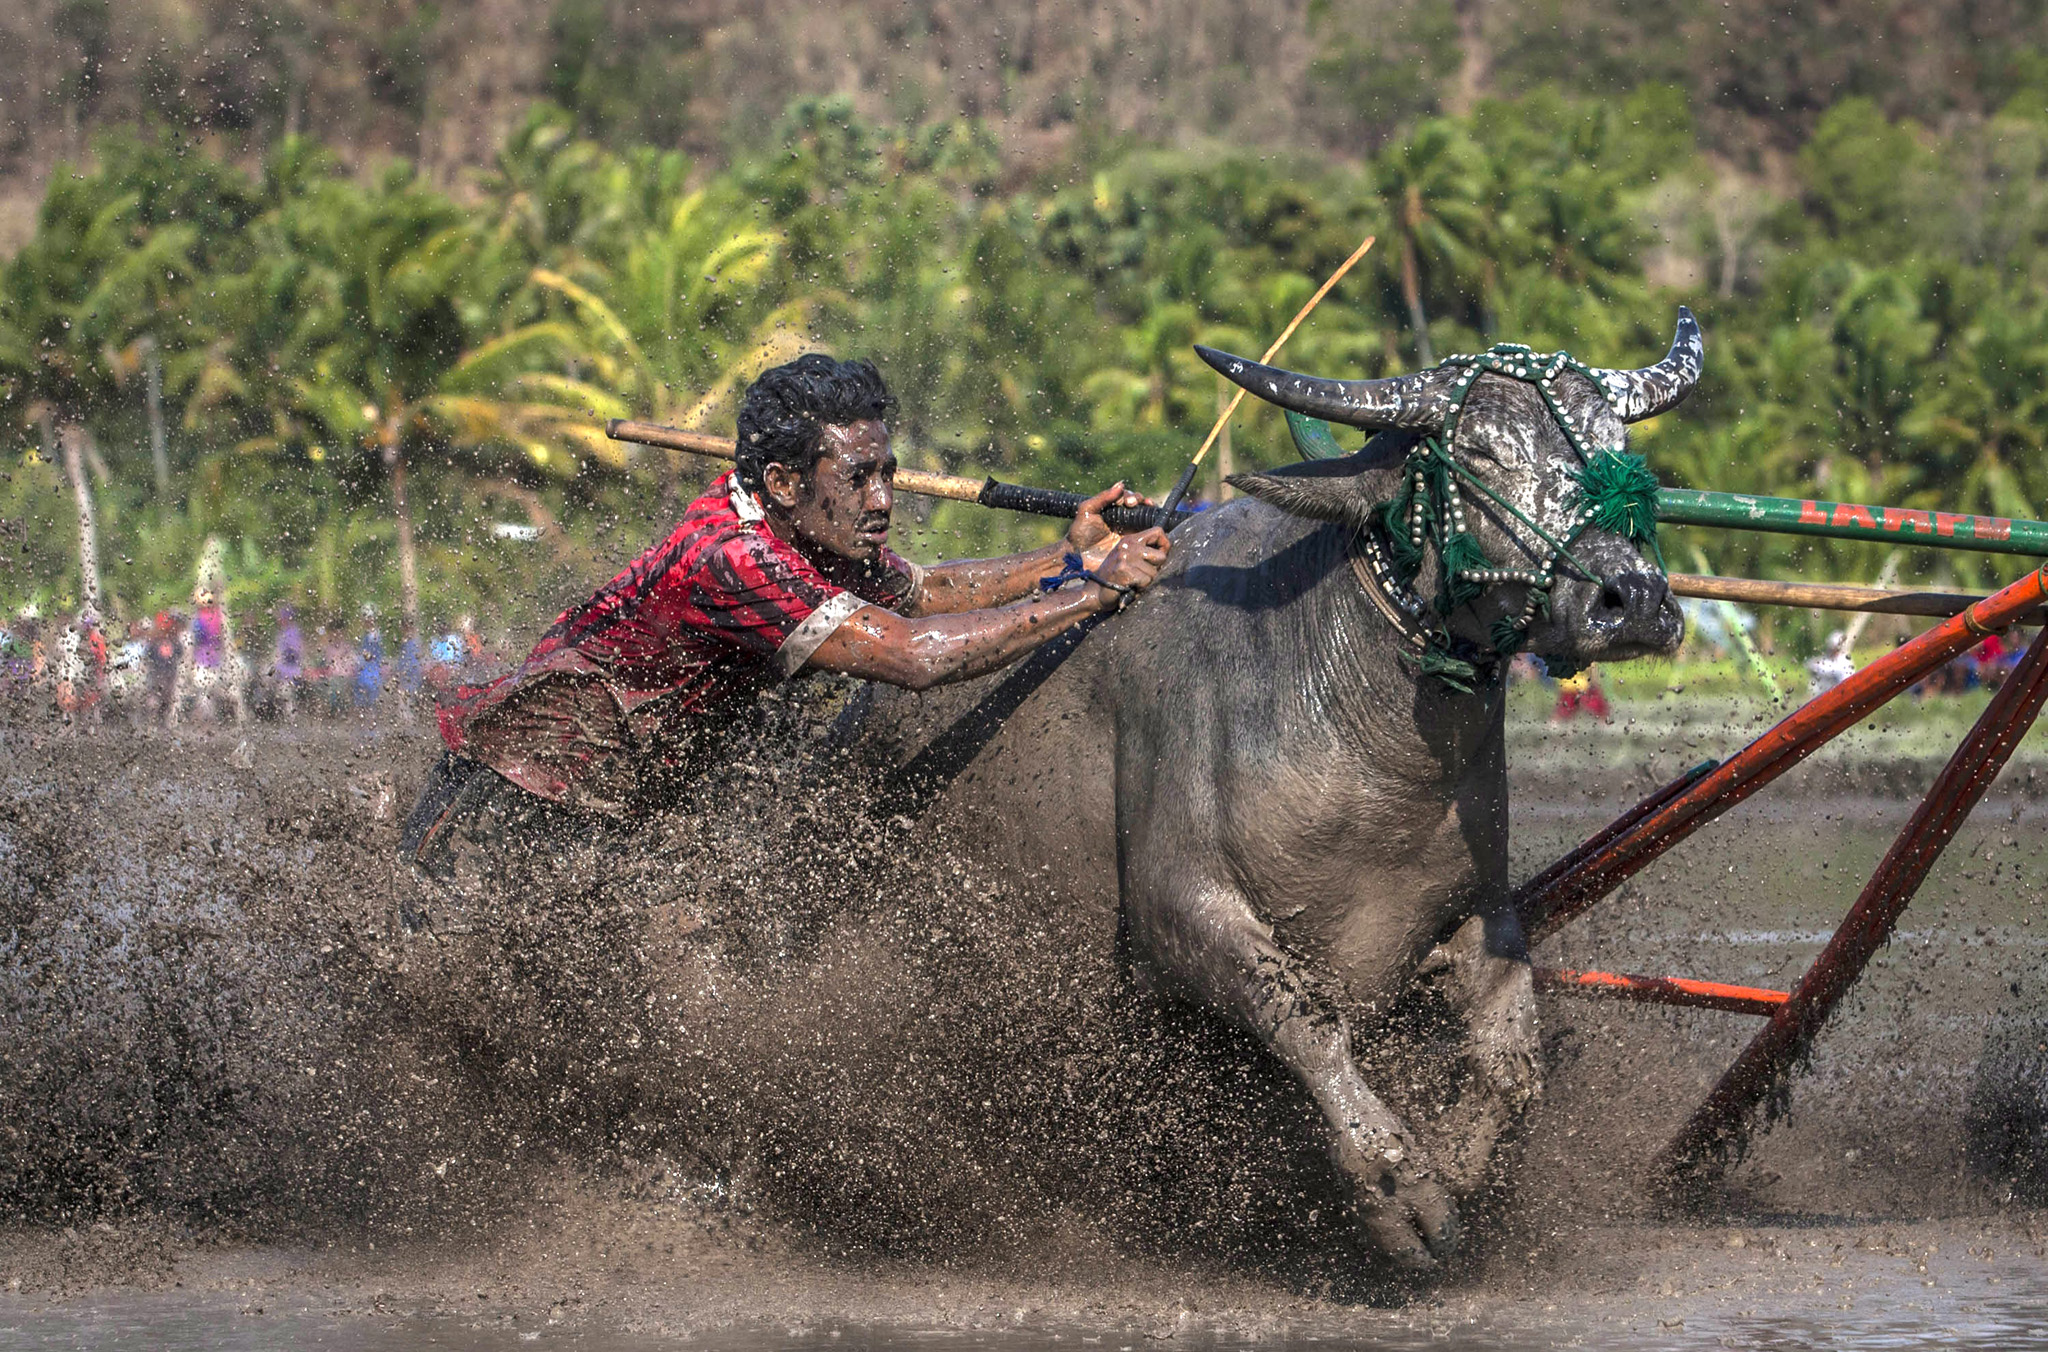 Revelers Gather For Annual Moyo Festival...SUMBAWA, WEST NUSA TENGGARA, INDONESIA - SEPTEMBER 30:  A jockey spurs the buffalos as they race during Barapan Kebo or buffalo races as part of the Moyo festival on September 30, 2014 in Sumbawa Island, West Nusa Tenggara, Indonesia. The traditional Buffalo races, known as Barapan Kebo, are held by Samawa tribes in muddy rice fields to celebrate and provide entertainment ahead of the annual planting season. Jockeys secure themselves on a wooden structure attached to the buffalo, and maneuver across the mud in a race to the finish line. The jockeys weild long sticks, in a similar style to jousting, and direct them towards targets called 'Saka'. (Photo by Ulet Ifansasti/Getty Images)